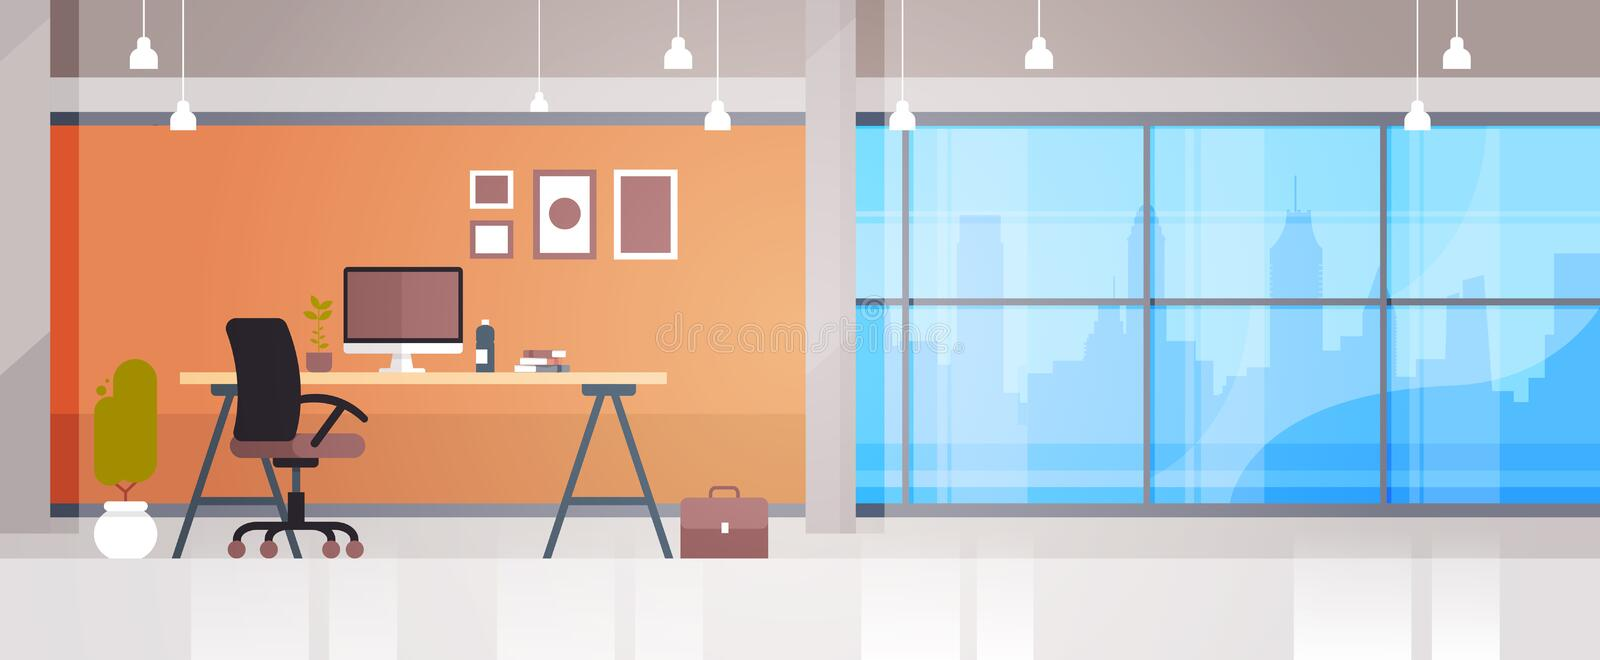 Empty Workplace Office Desk With Desktop Computer Workspace Interior Concept. Flat Vector Illustration stock illustration